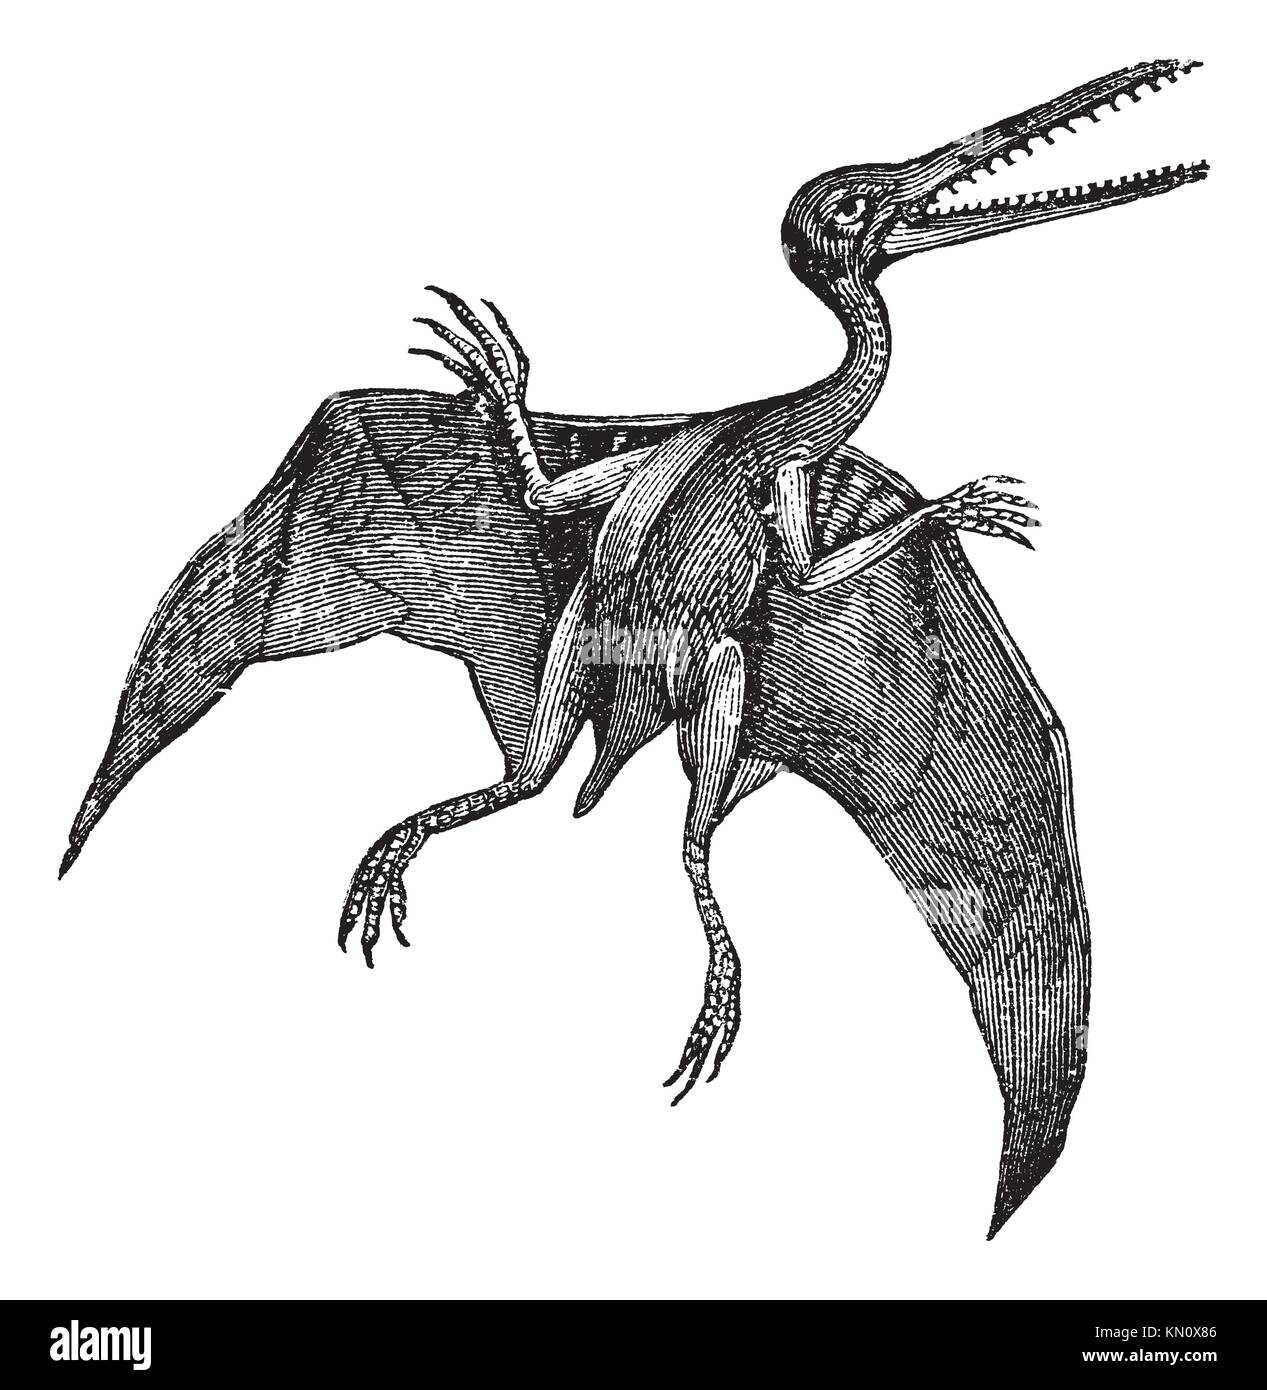 Pterodactylus or Pterodactylus antiquus, vintage engraving  Old engraved illustration of Pterodactylus isolated - Stock Image